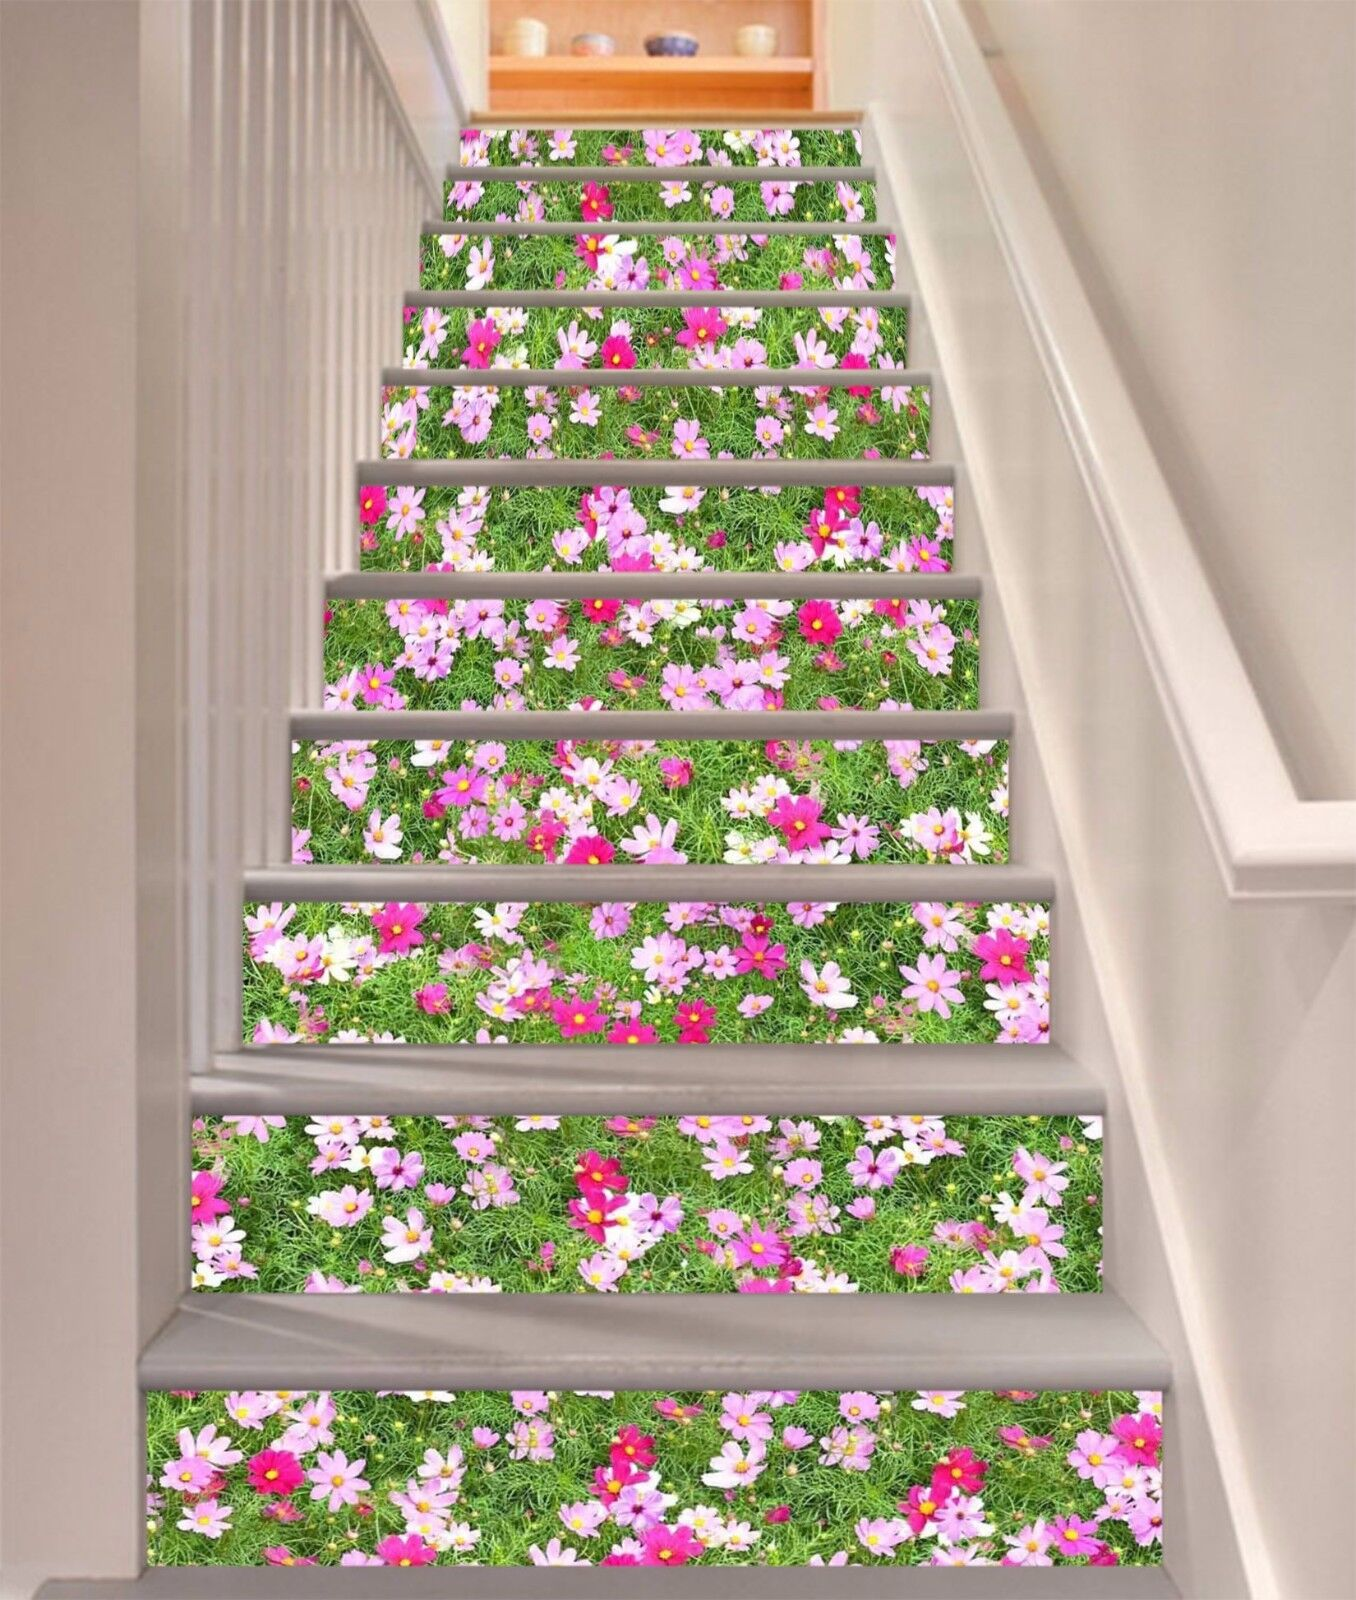 3D Grass Flowers 3 Stairs Risers Decoration Photo Mural Vinyl Decal Wallpaper US